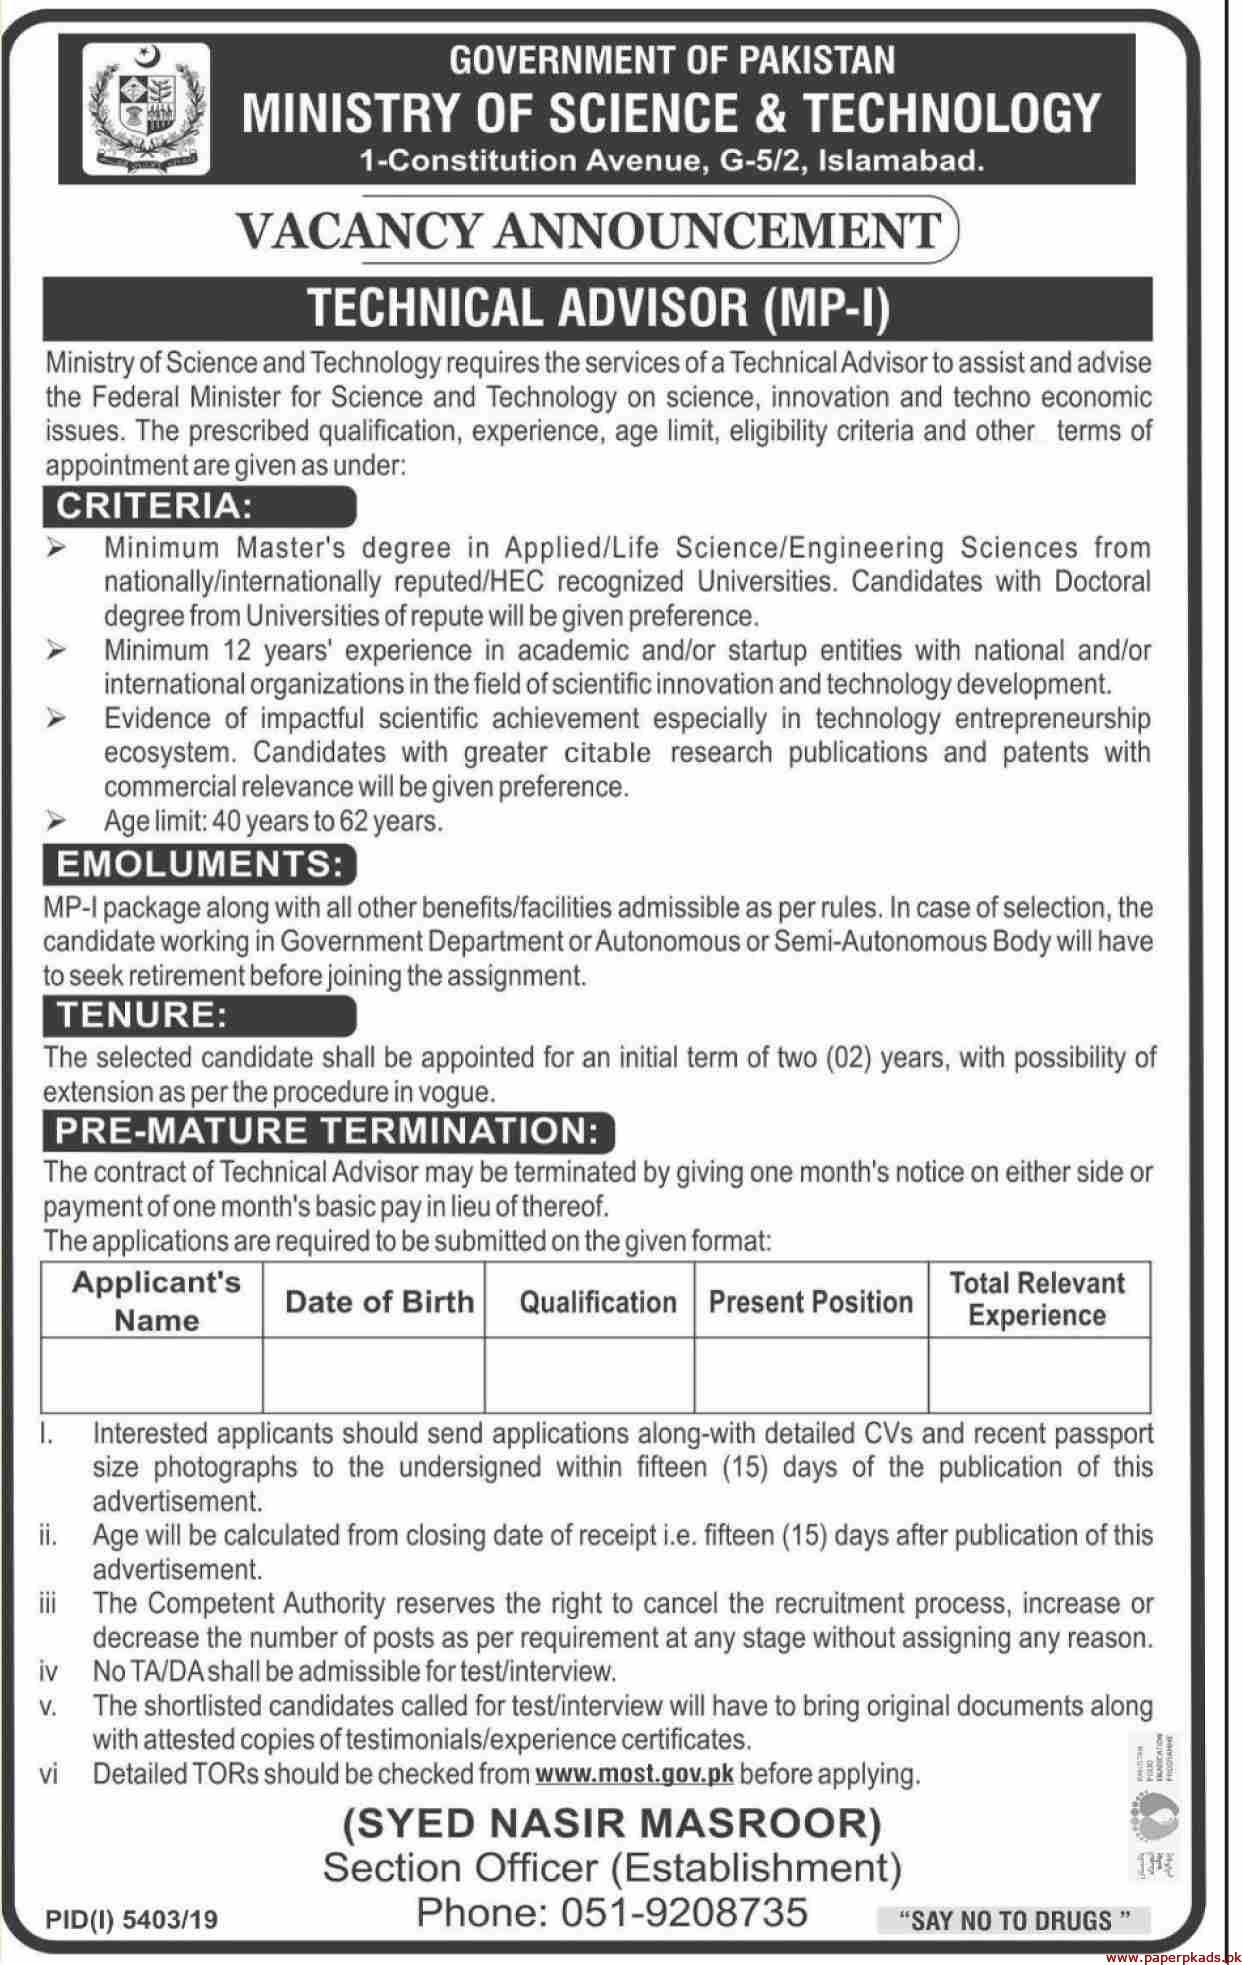 Government of Pakistan Ministry of Science & Technology Jobs 2020 Latest